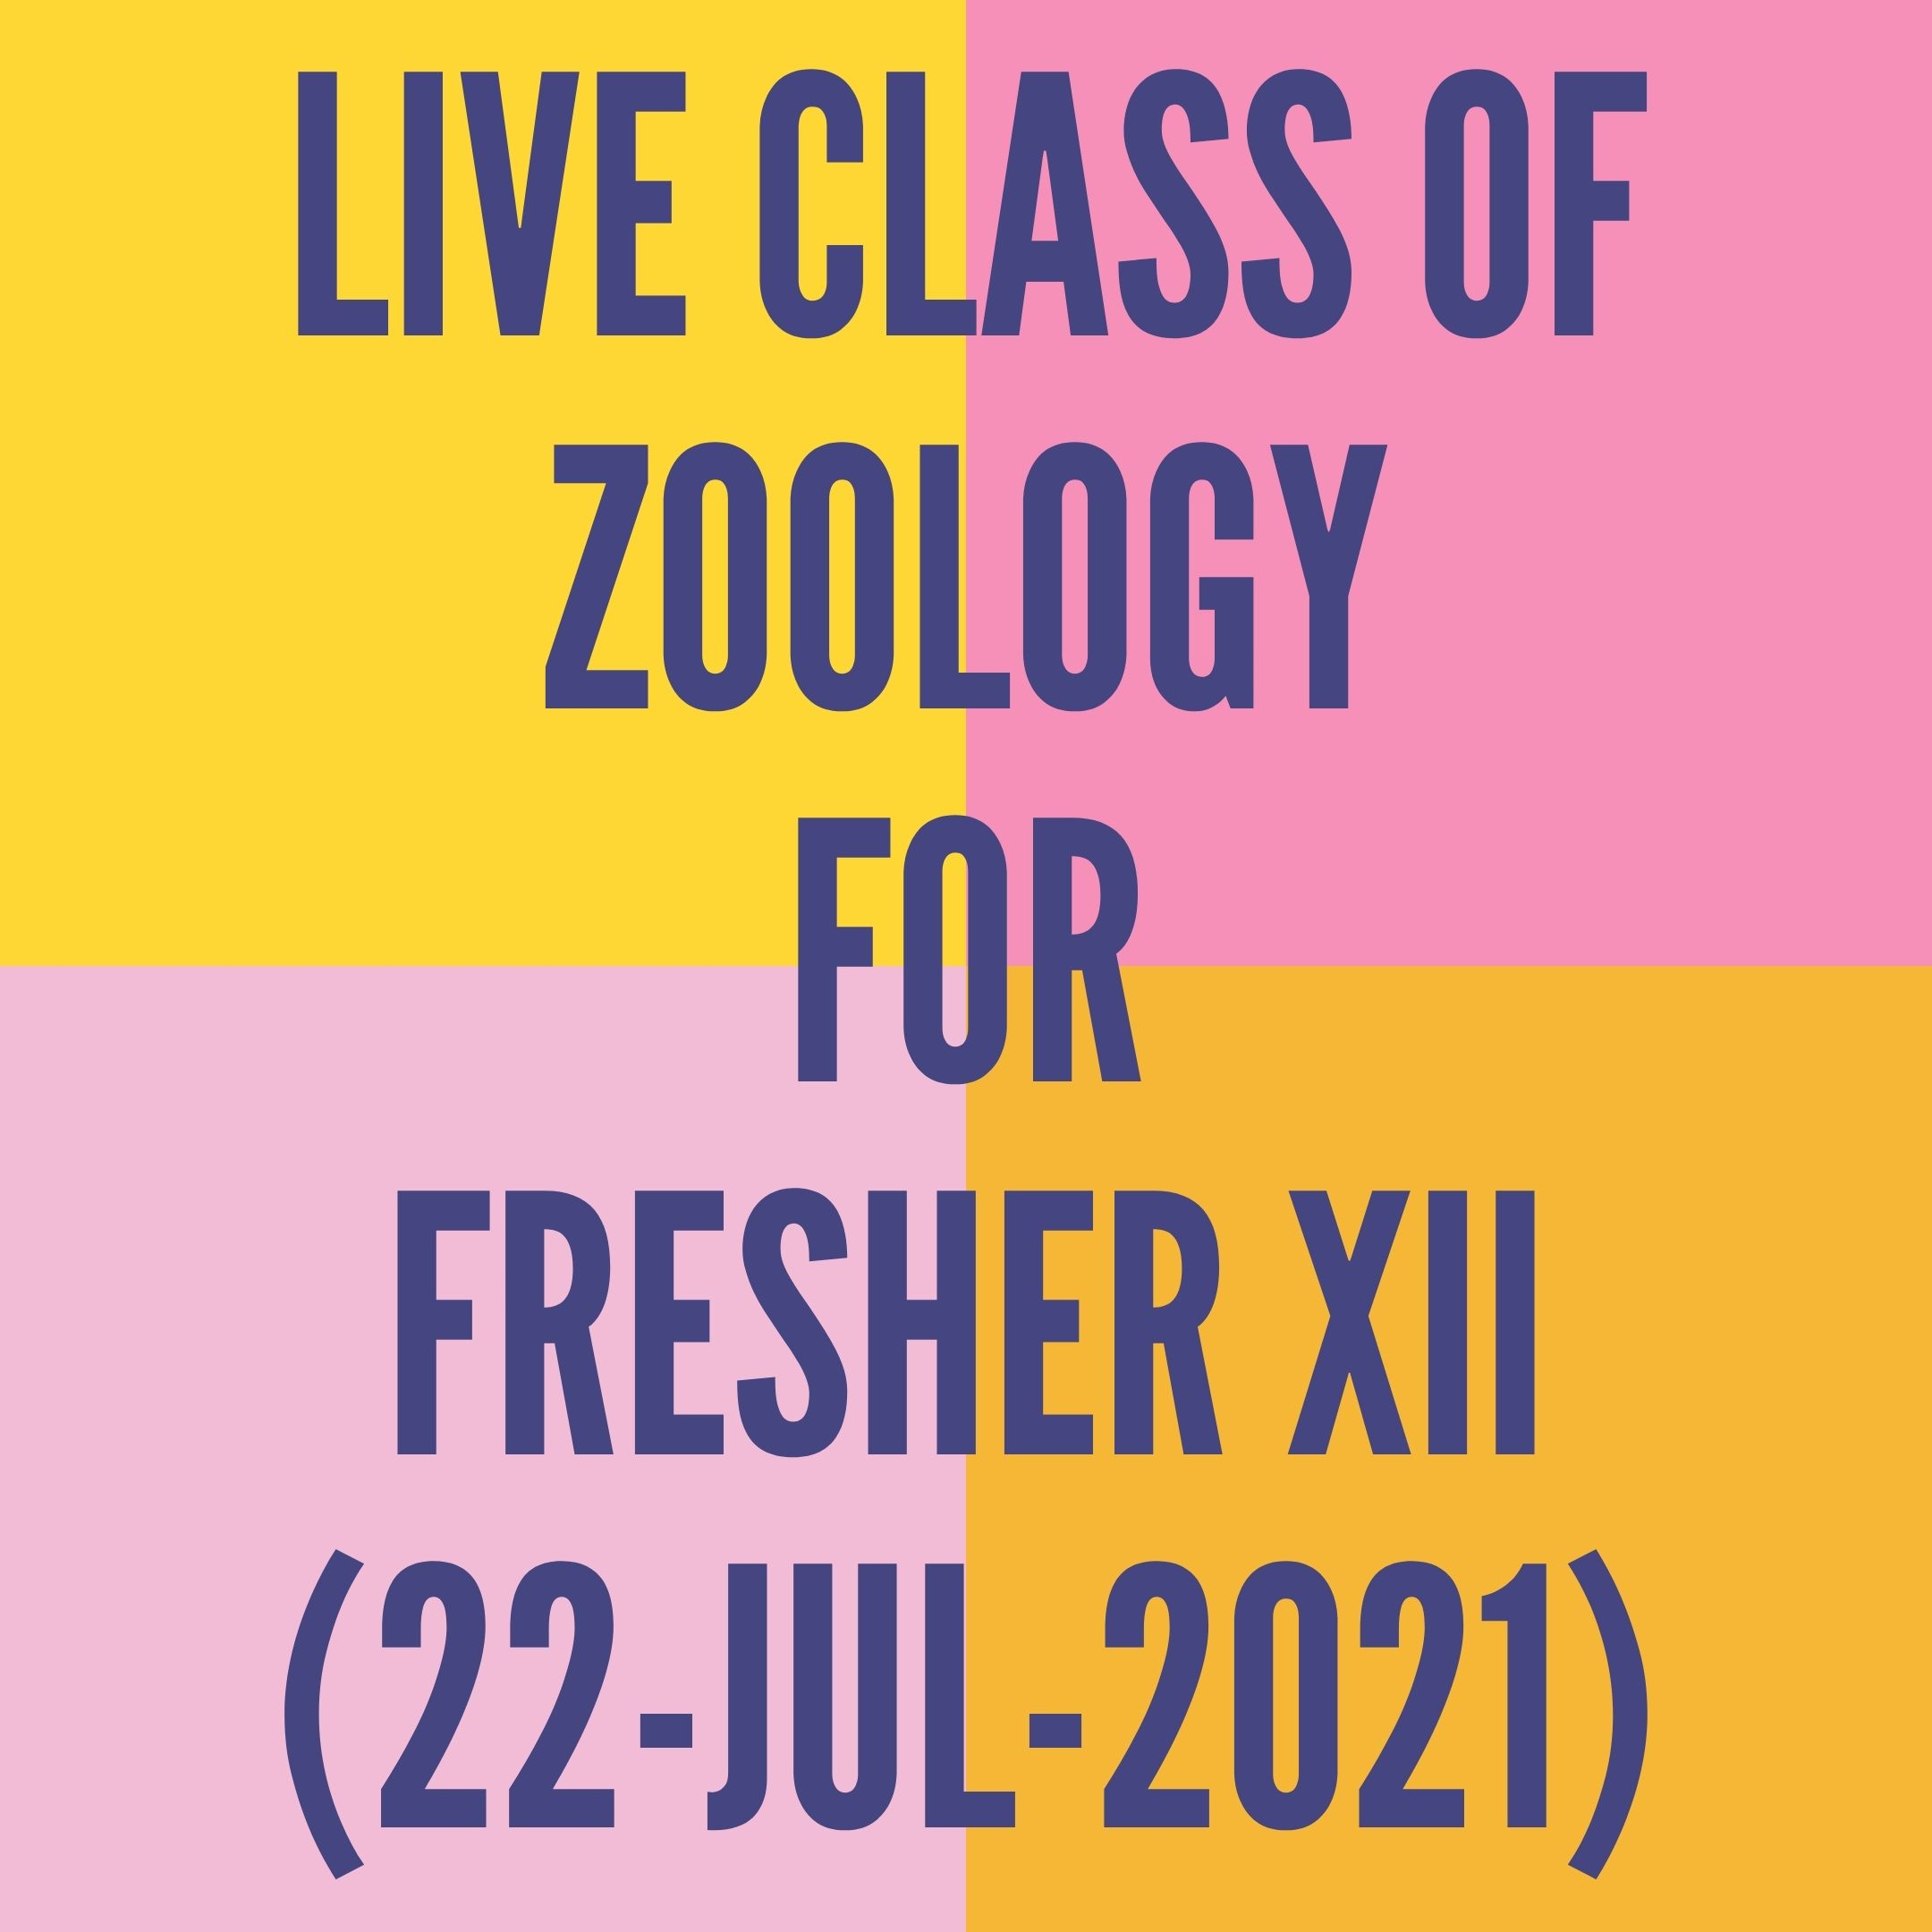 LIVE CLASS OF ZOOLOGY FOR FRESHER XII (22-JUL-2021) HUMAN REPRODUCTION